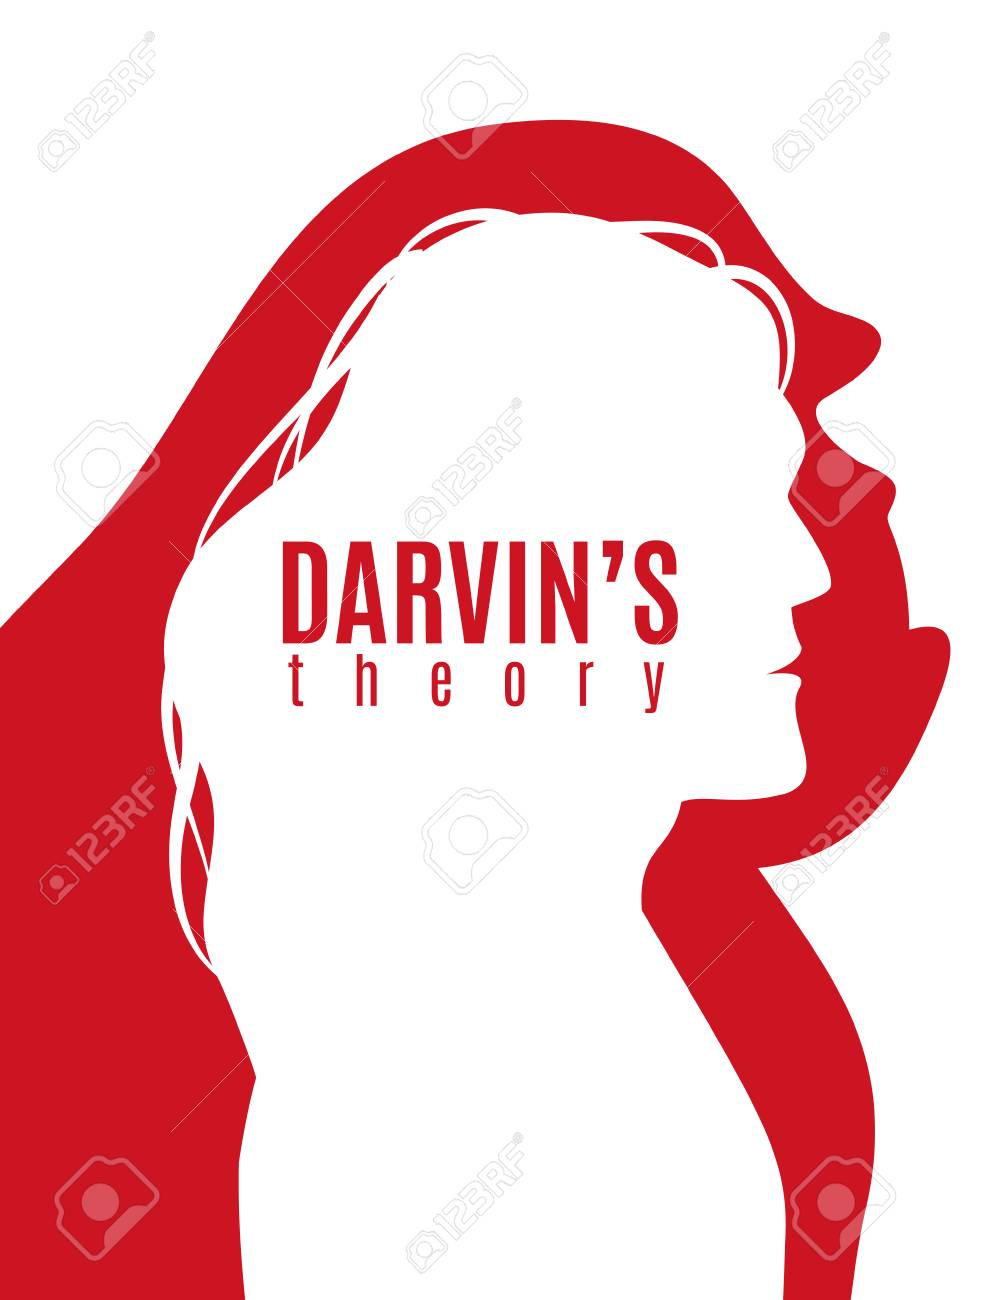 Darwin theory red white poster with profile silhouettes of primate and modern man vector illustration - 100727055